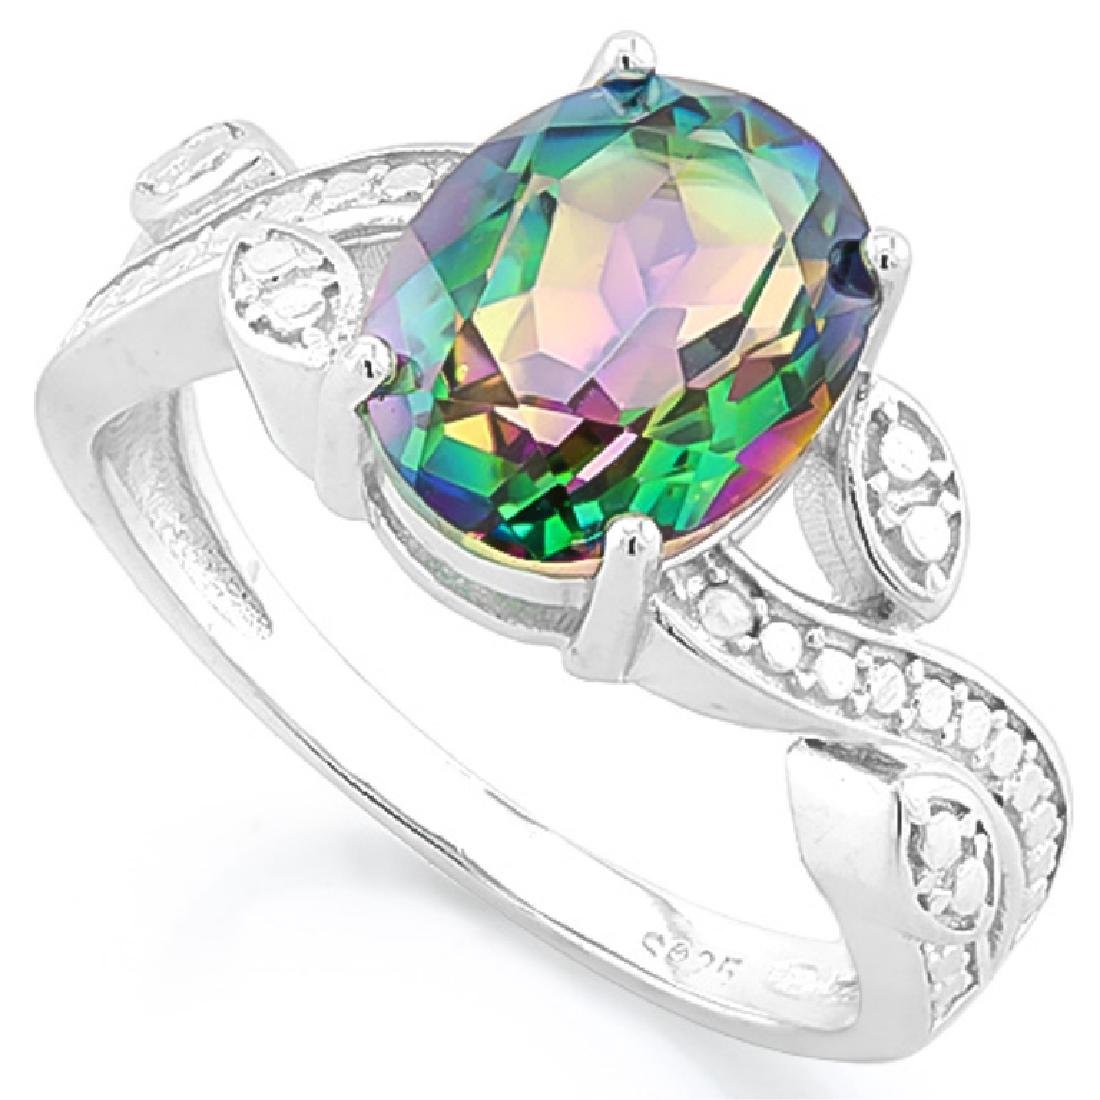 UNIQUE PINK/GREEN MYSTIC TOPAZ GEMSTONE RING